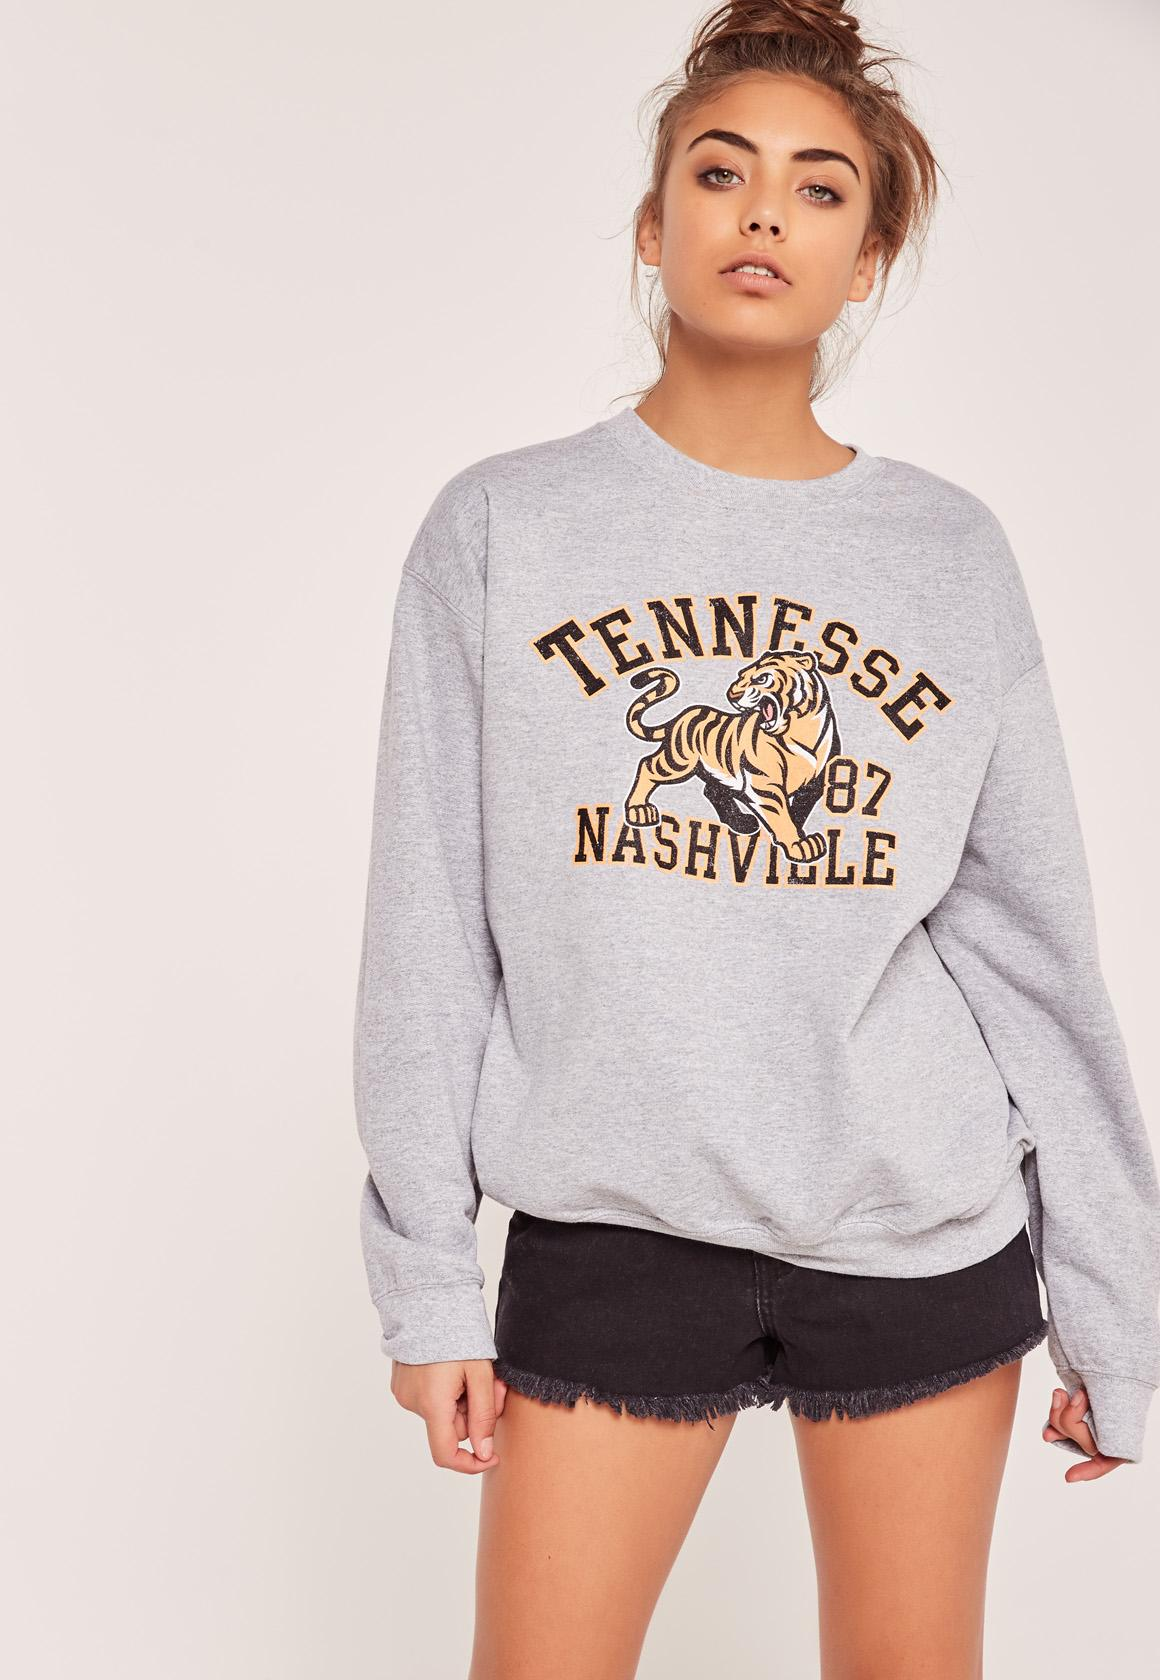 Missguided tennessee nashville sweatshirt grey in gray lyst